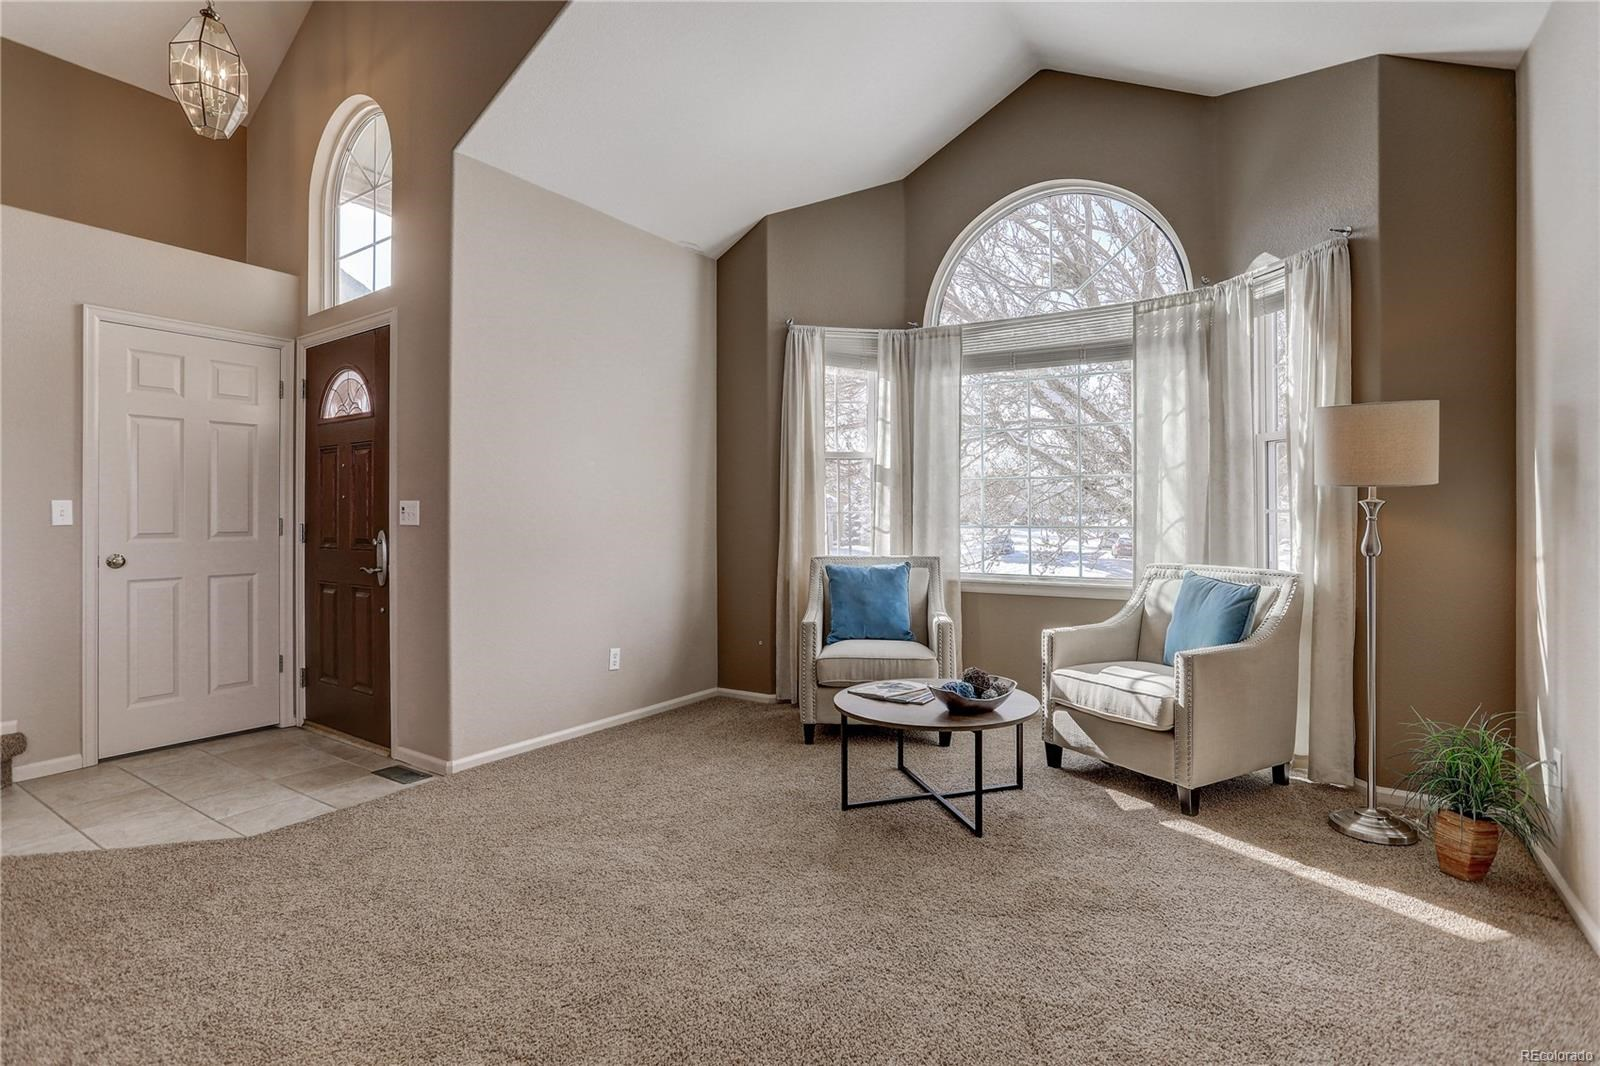 MLS# 8327774 - 4 - 806 W 127th Court, Westminster, CO 80234